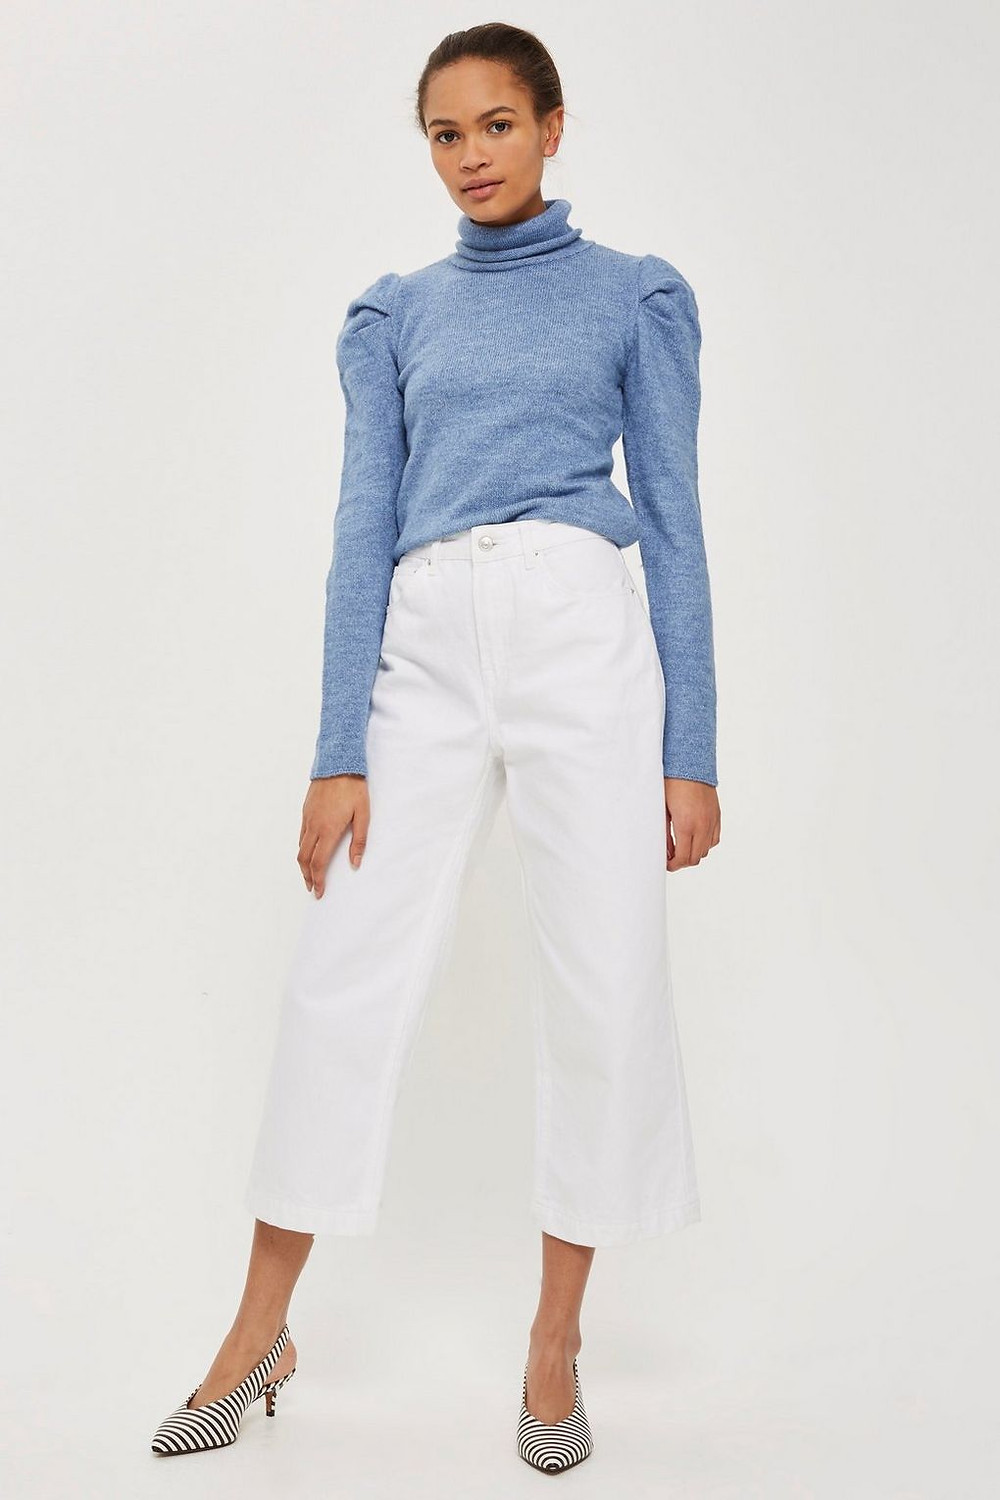 Topshop Bold Sleeve Roll Neck Sweater $20